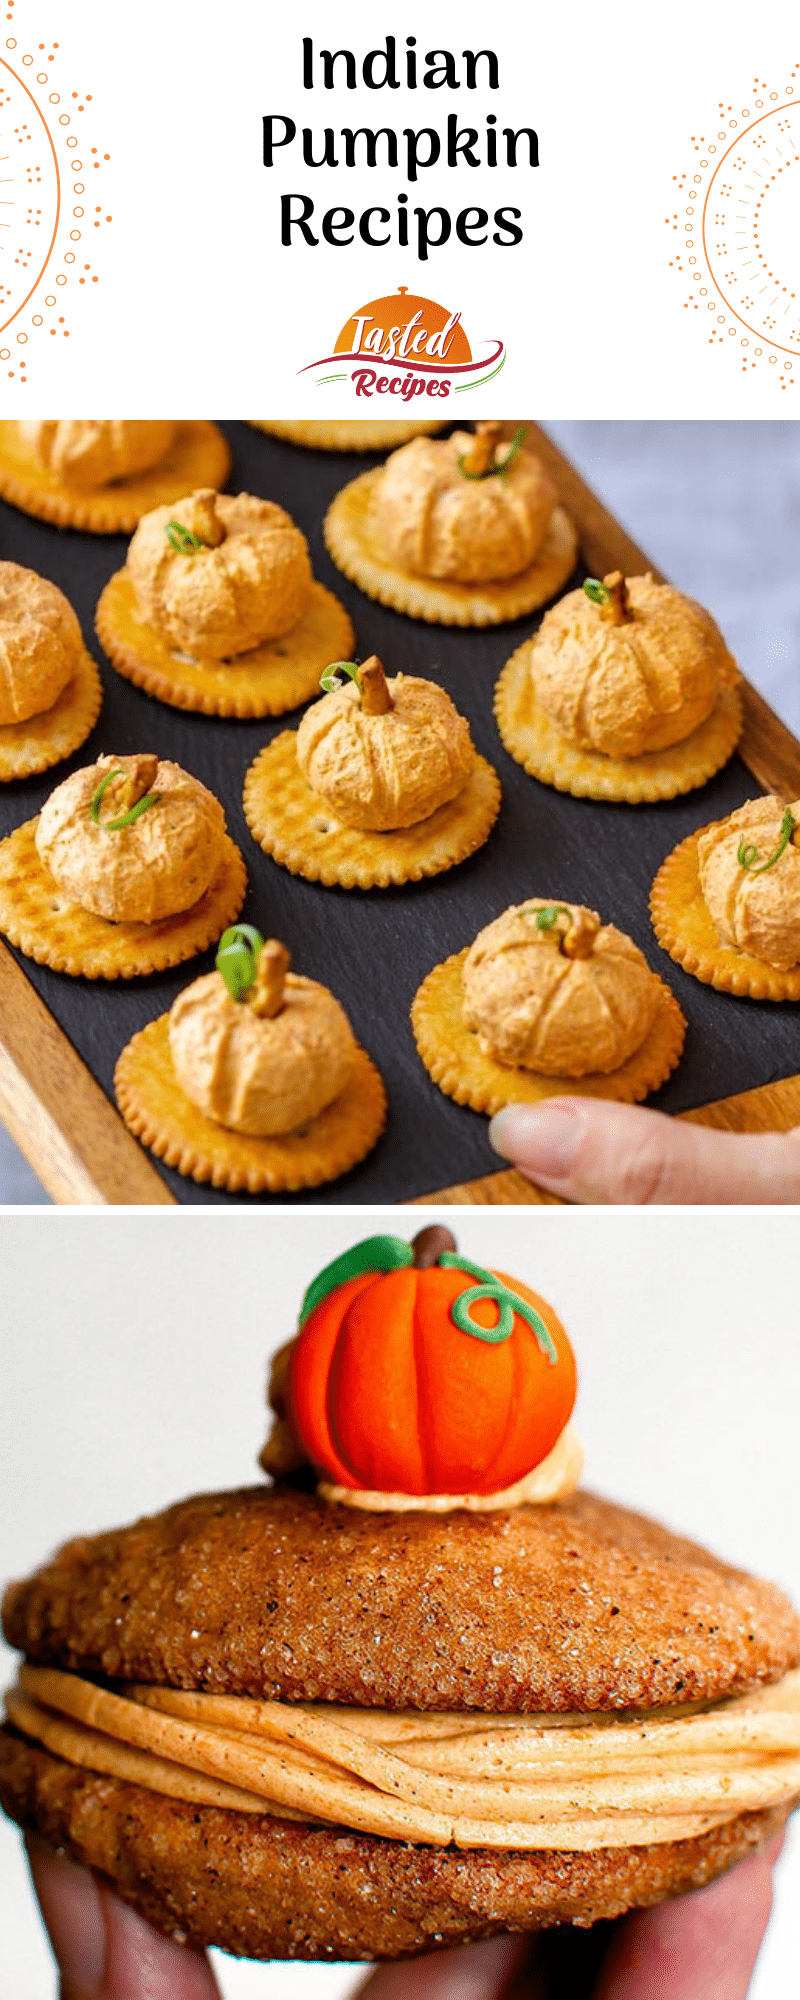 indian-pumpkin-recipes-pinterest